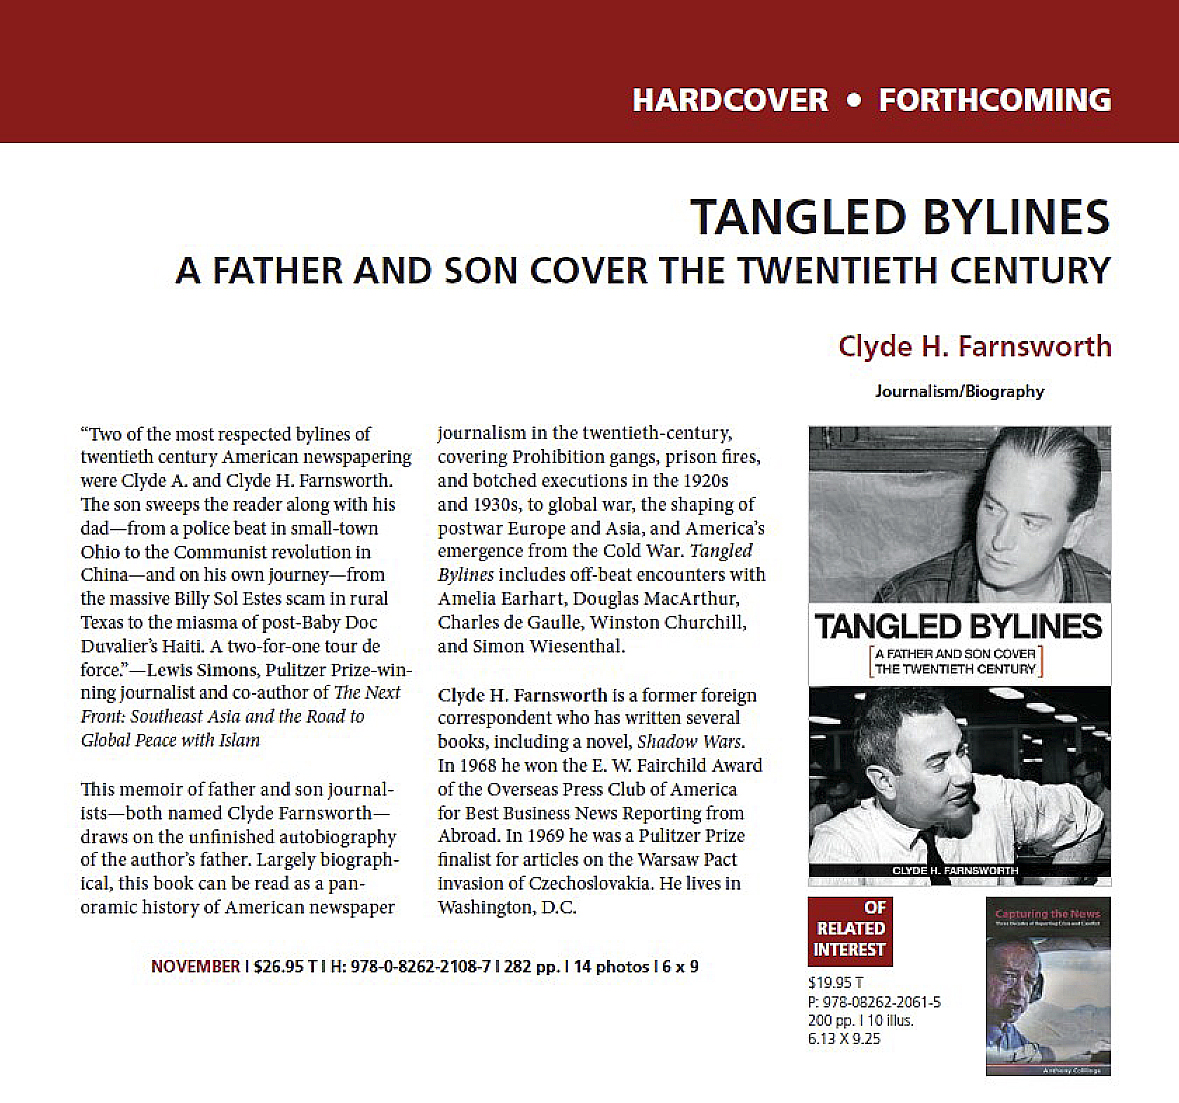 Tangled Bylines Release Notice